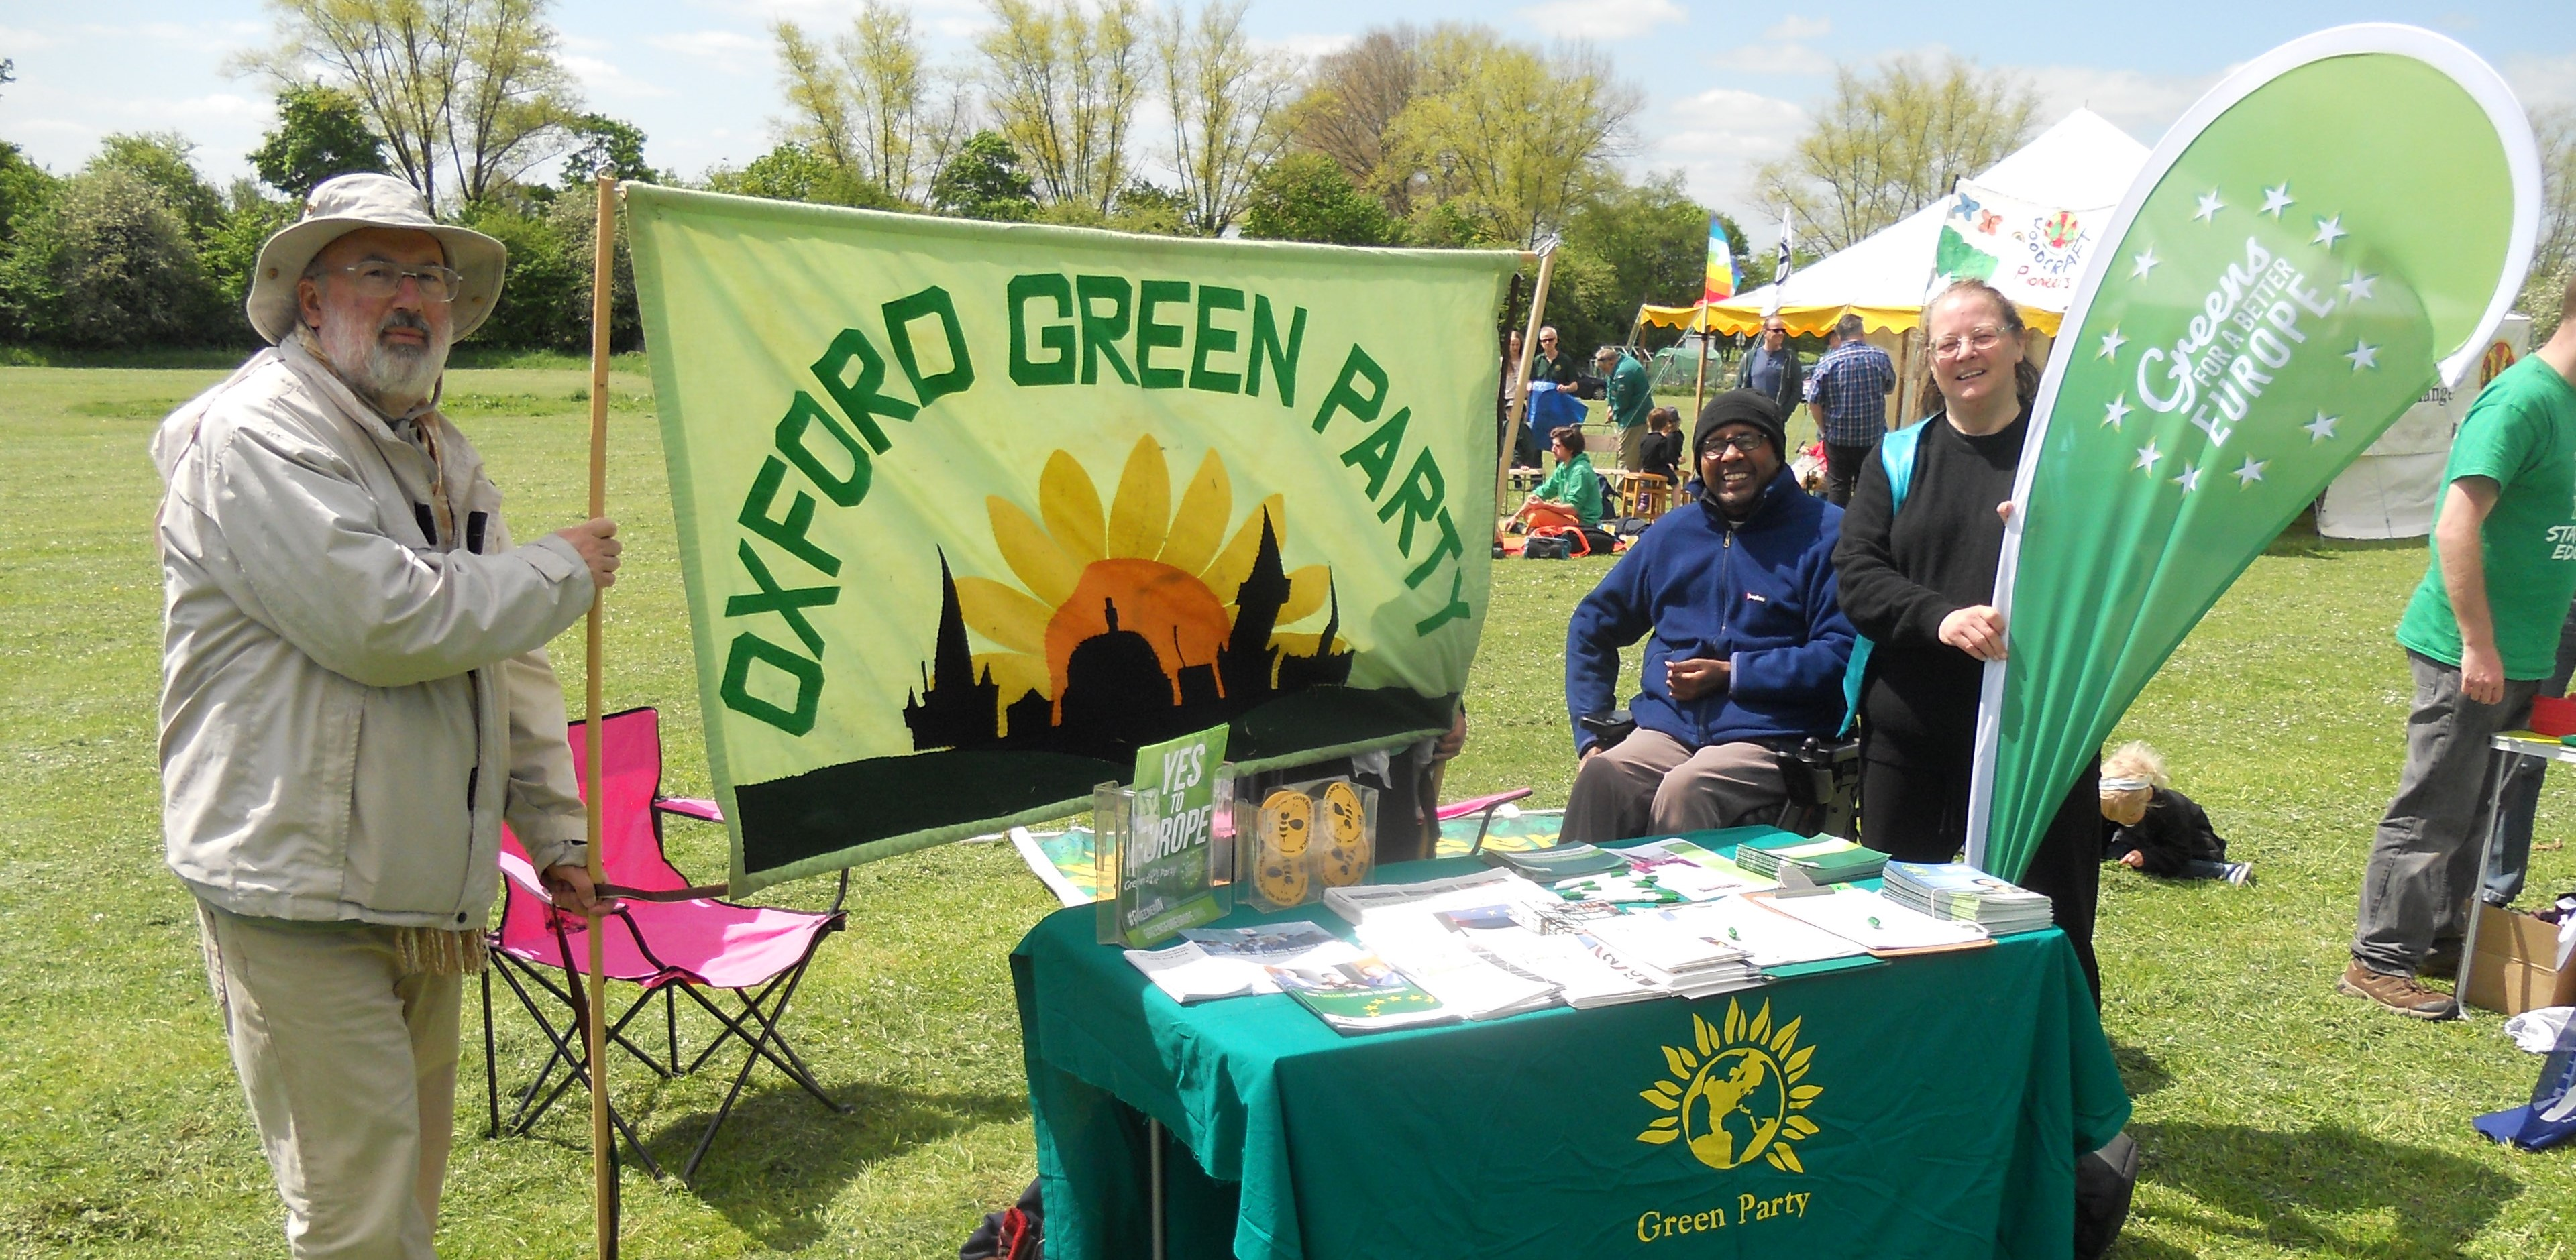 Read about why the Green Party is campaigning for a Remain Vote